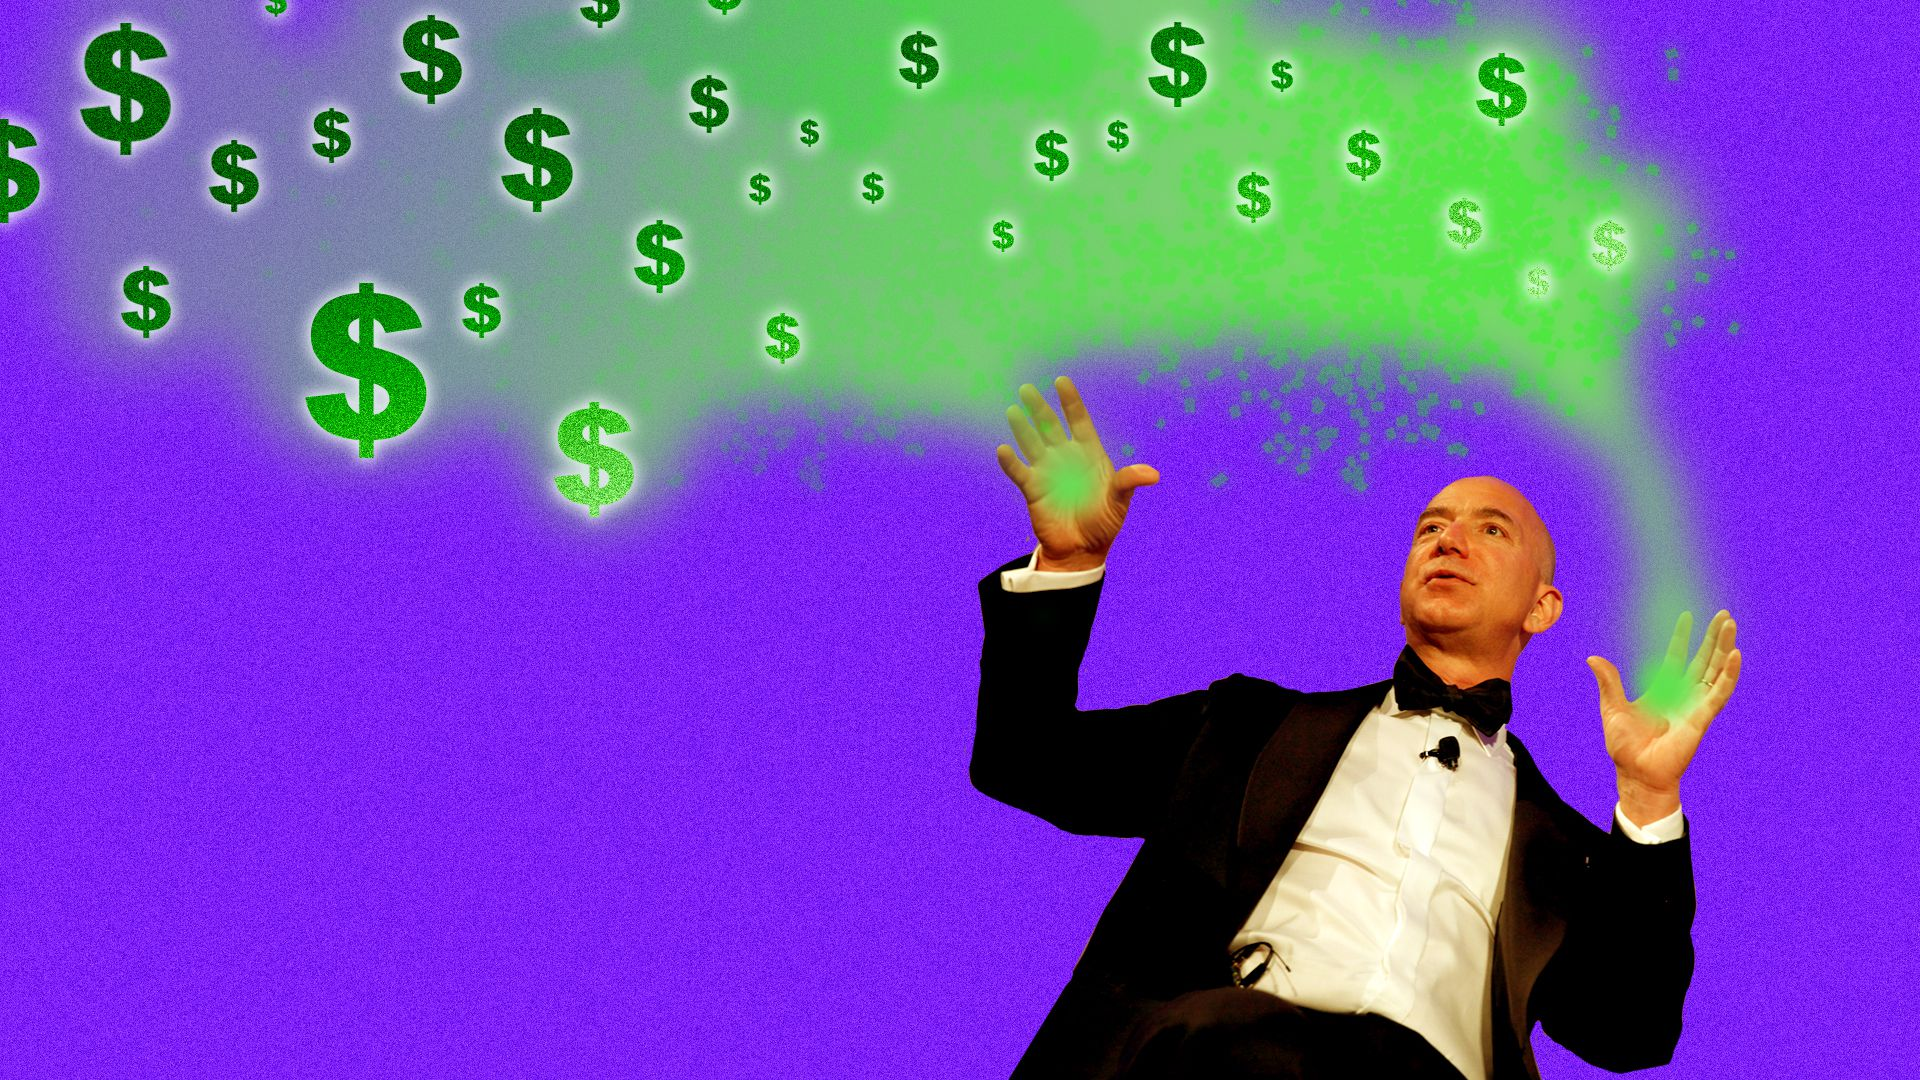 Jeff Bezos in a tuxedo, with green fog and dollar signs emanating from his hands